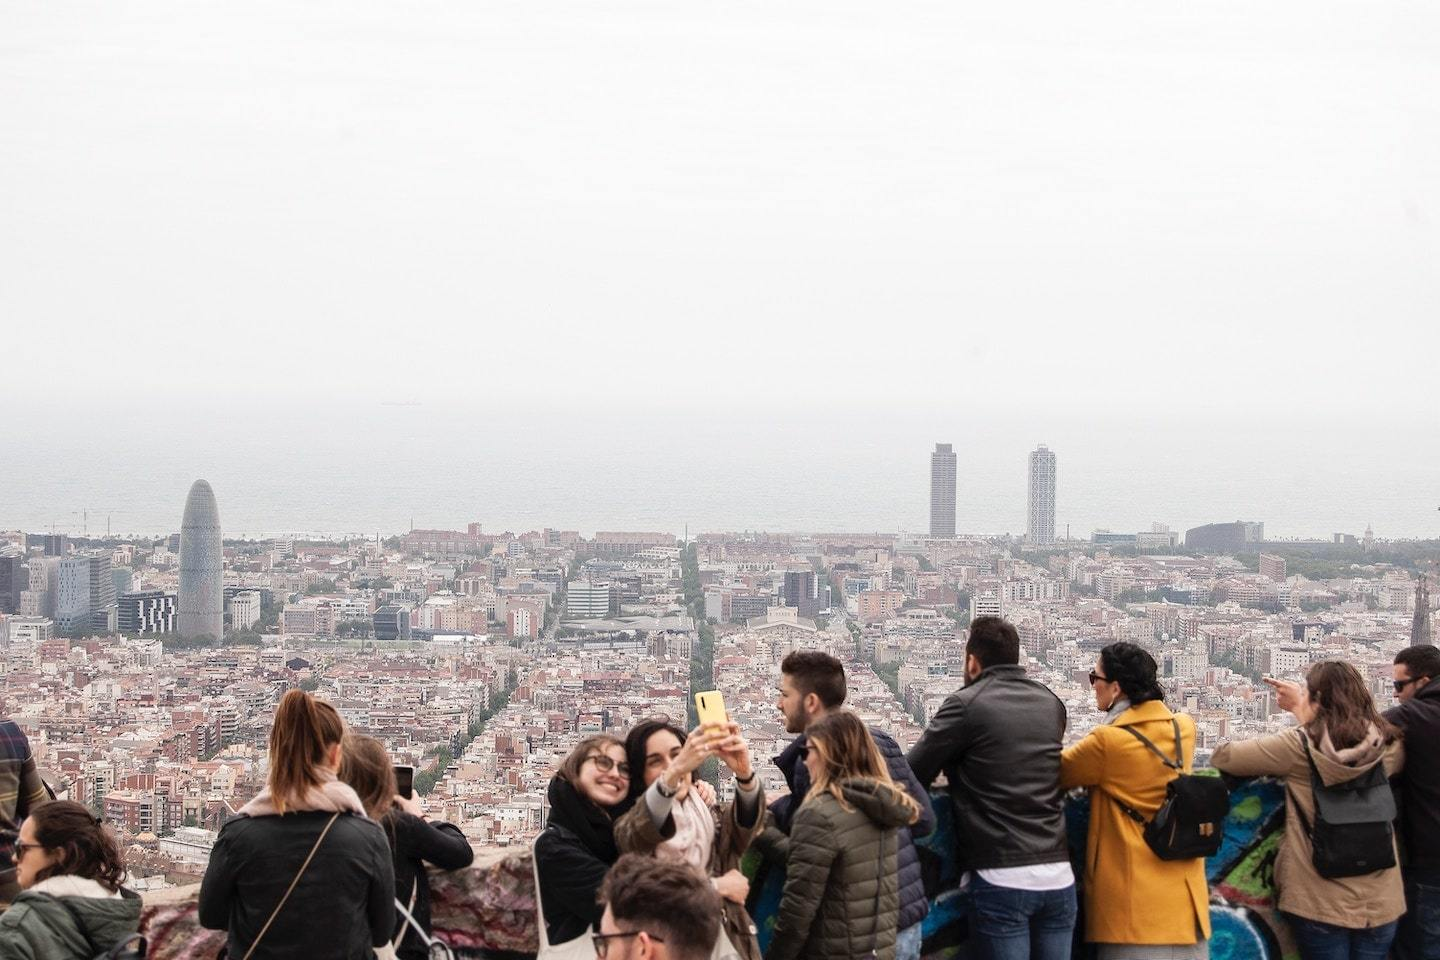 people taking selfies with Barcelona behind